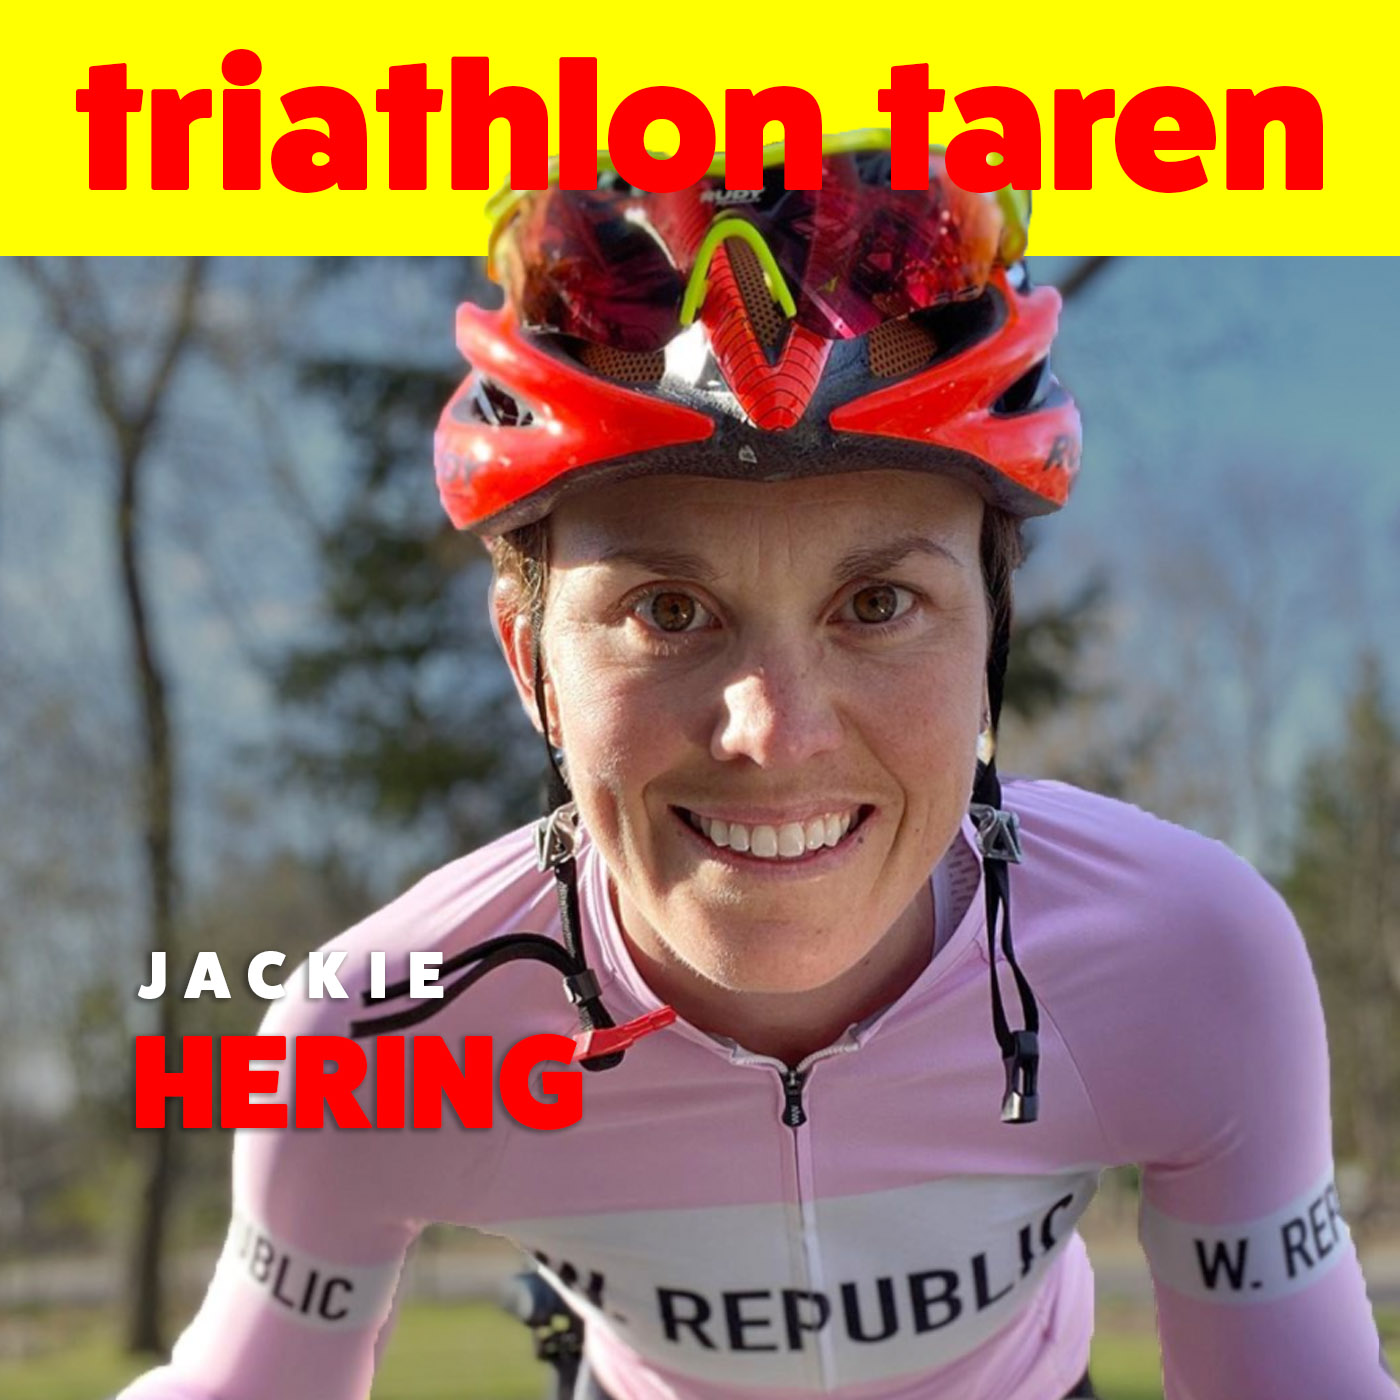 Pro triathlete stops birth control and starts winning with Jackie Hering